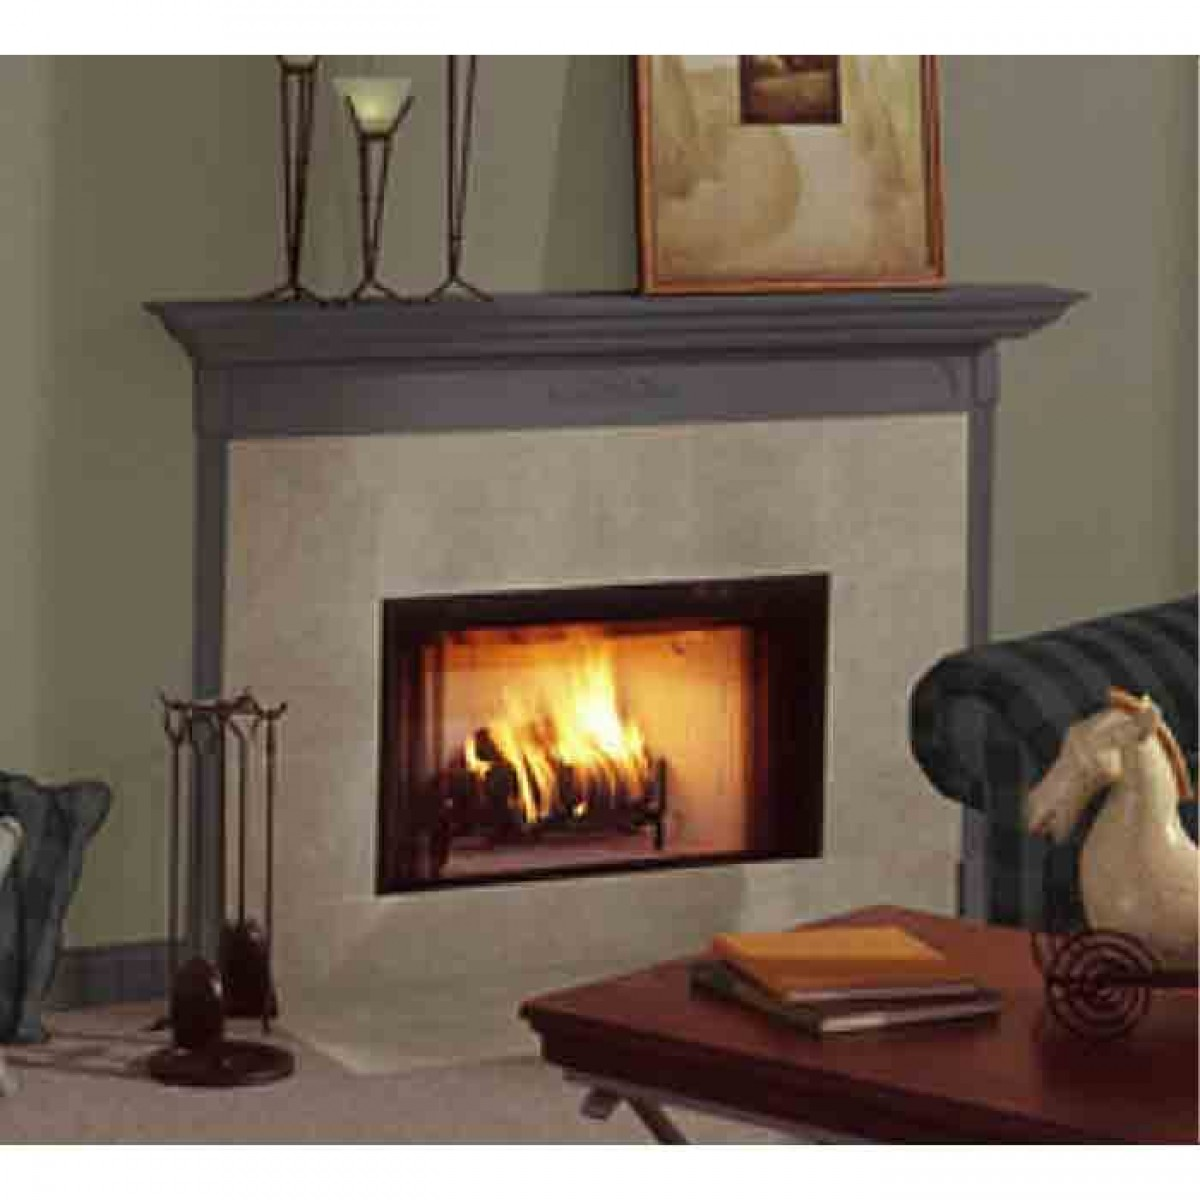 Majestic BCBV36I Builders Choice Open Hearth B Vent Gas